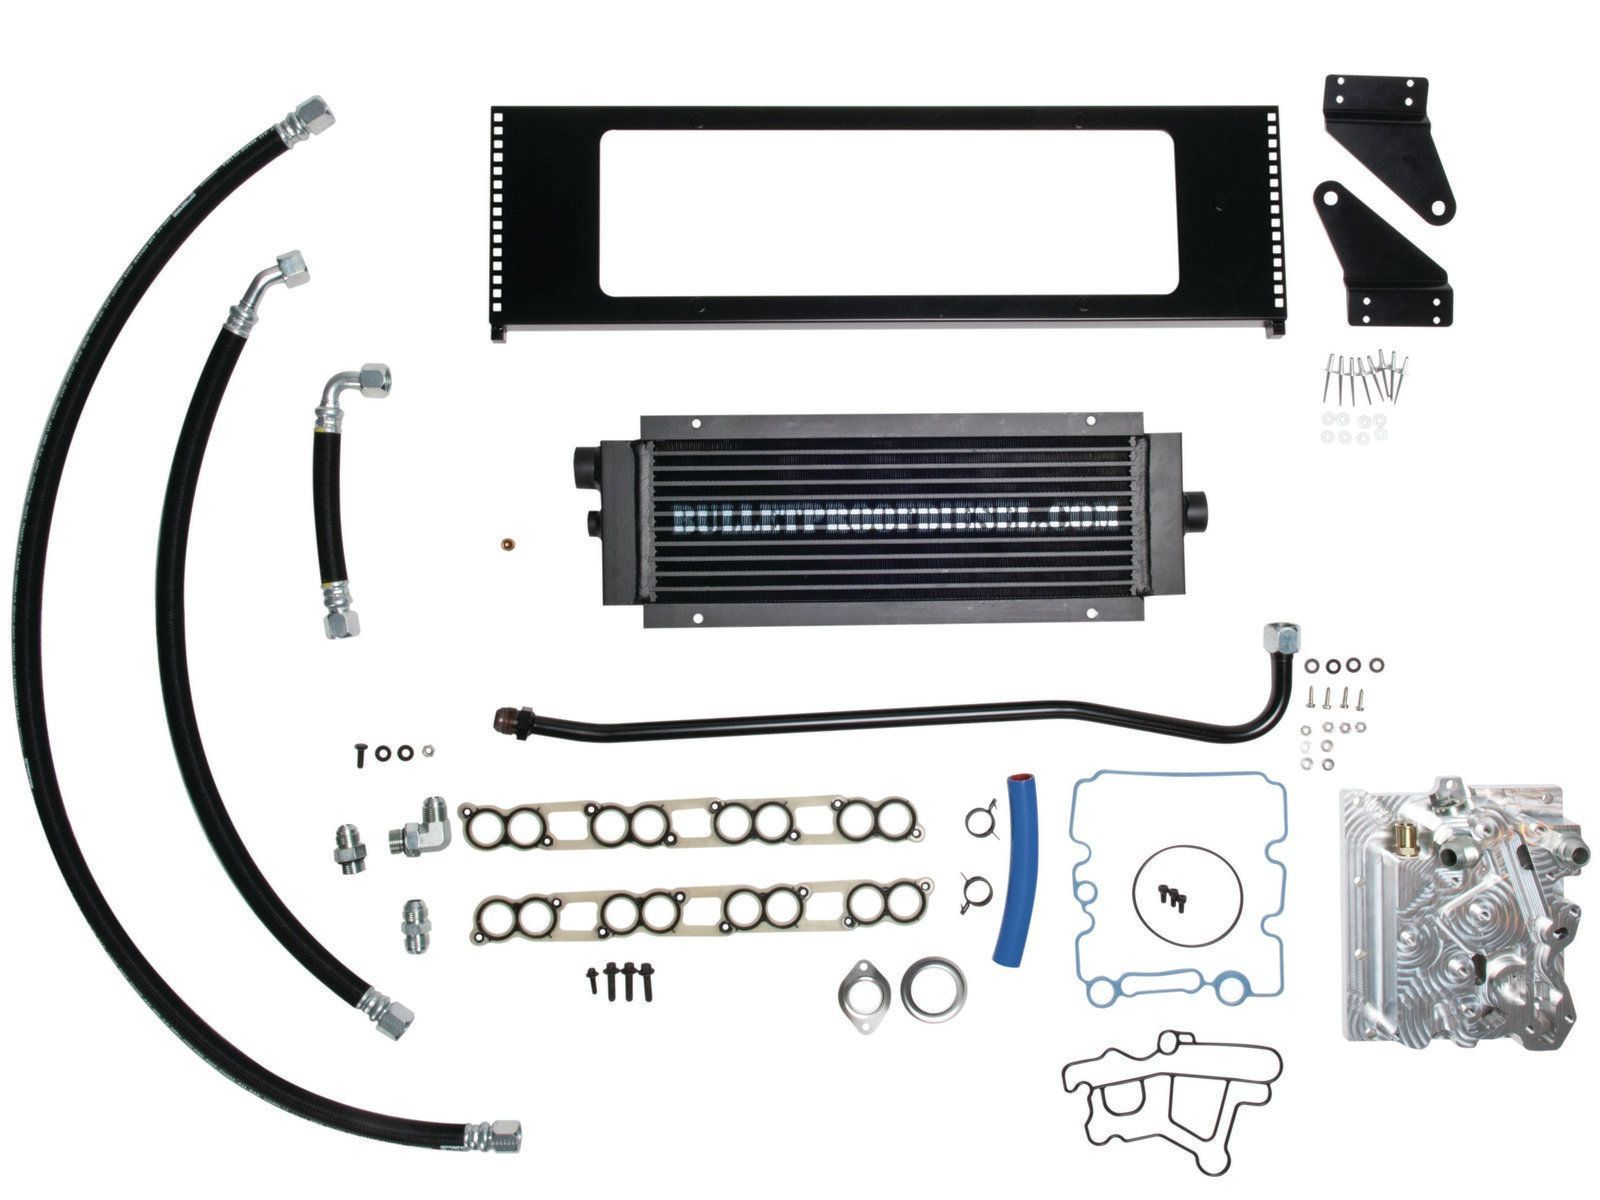 Bullet proof engine oil cooler for your ford diesel the factory oil filtration option keeps your oem filtration while still utilizing the renowned remote